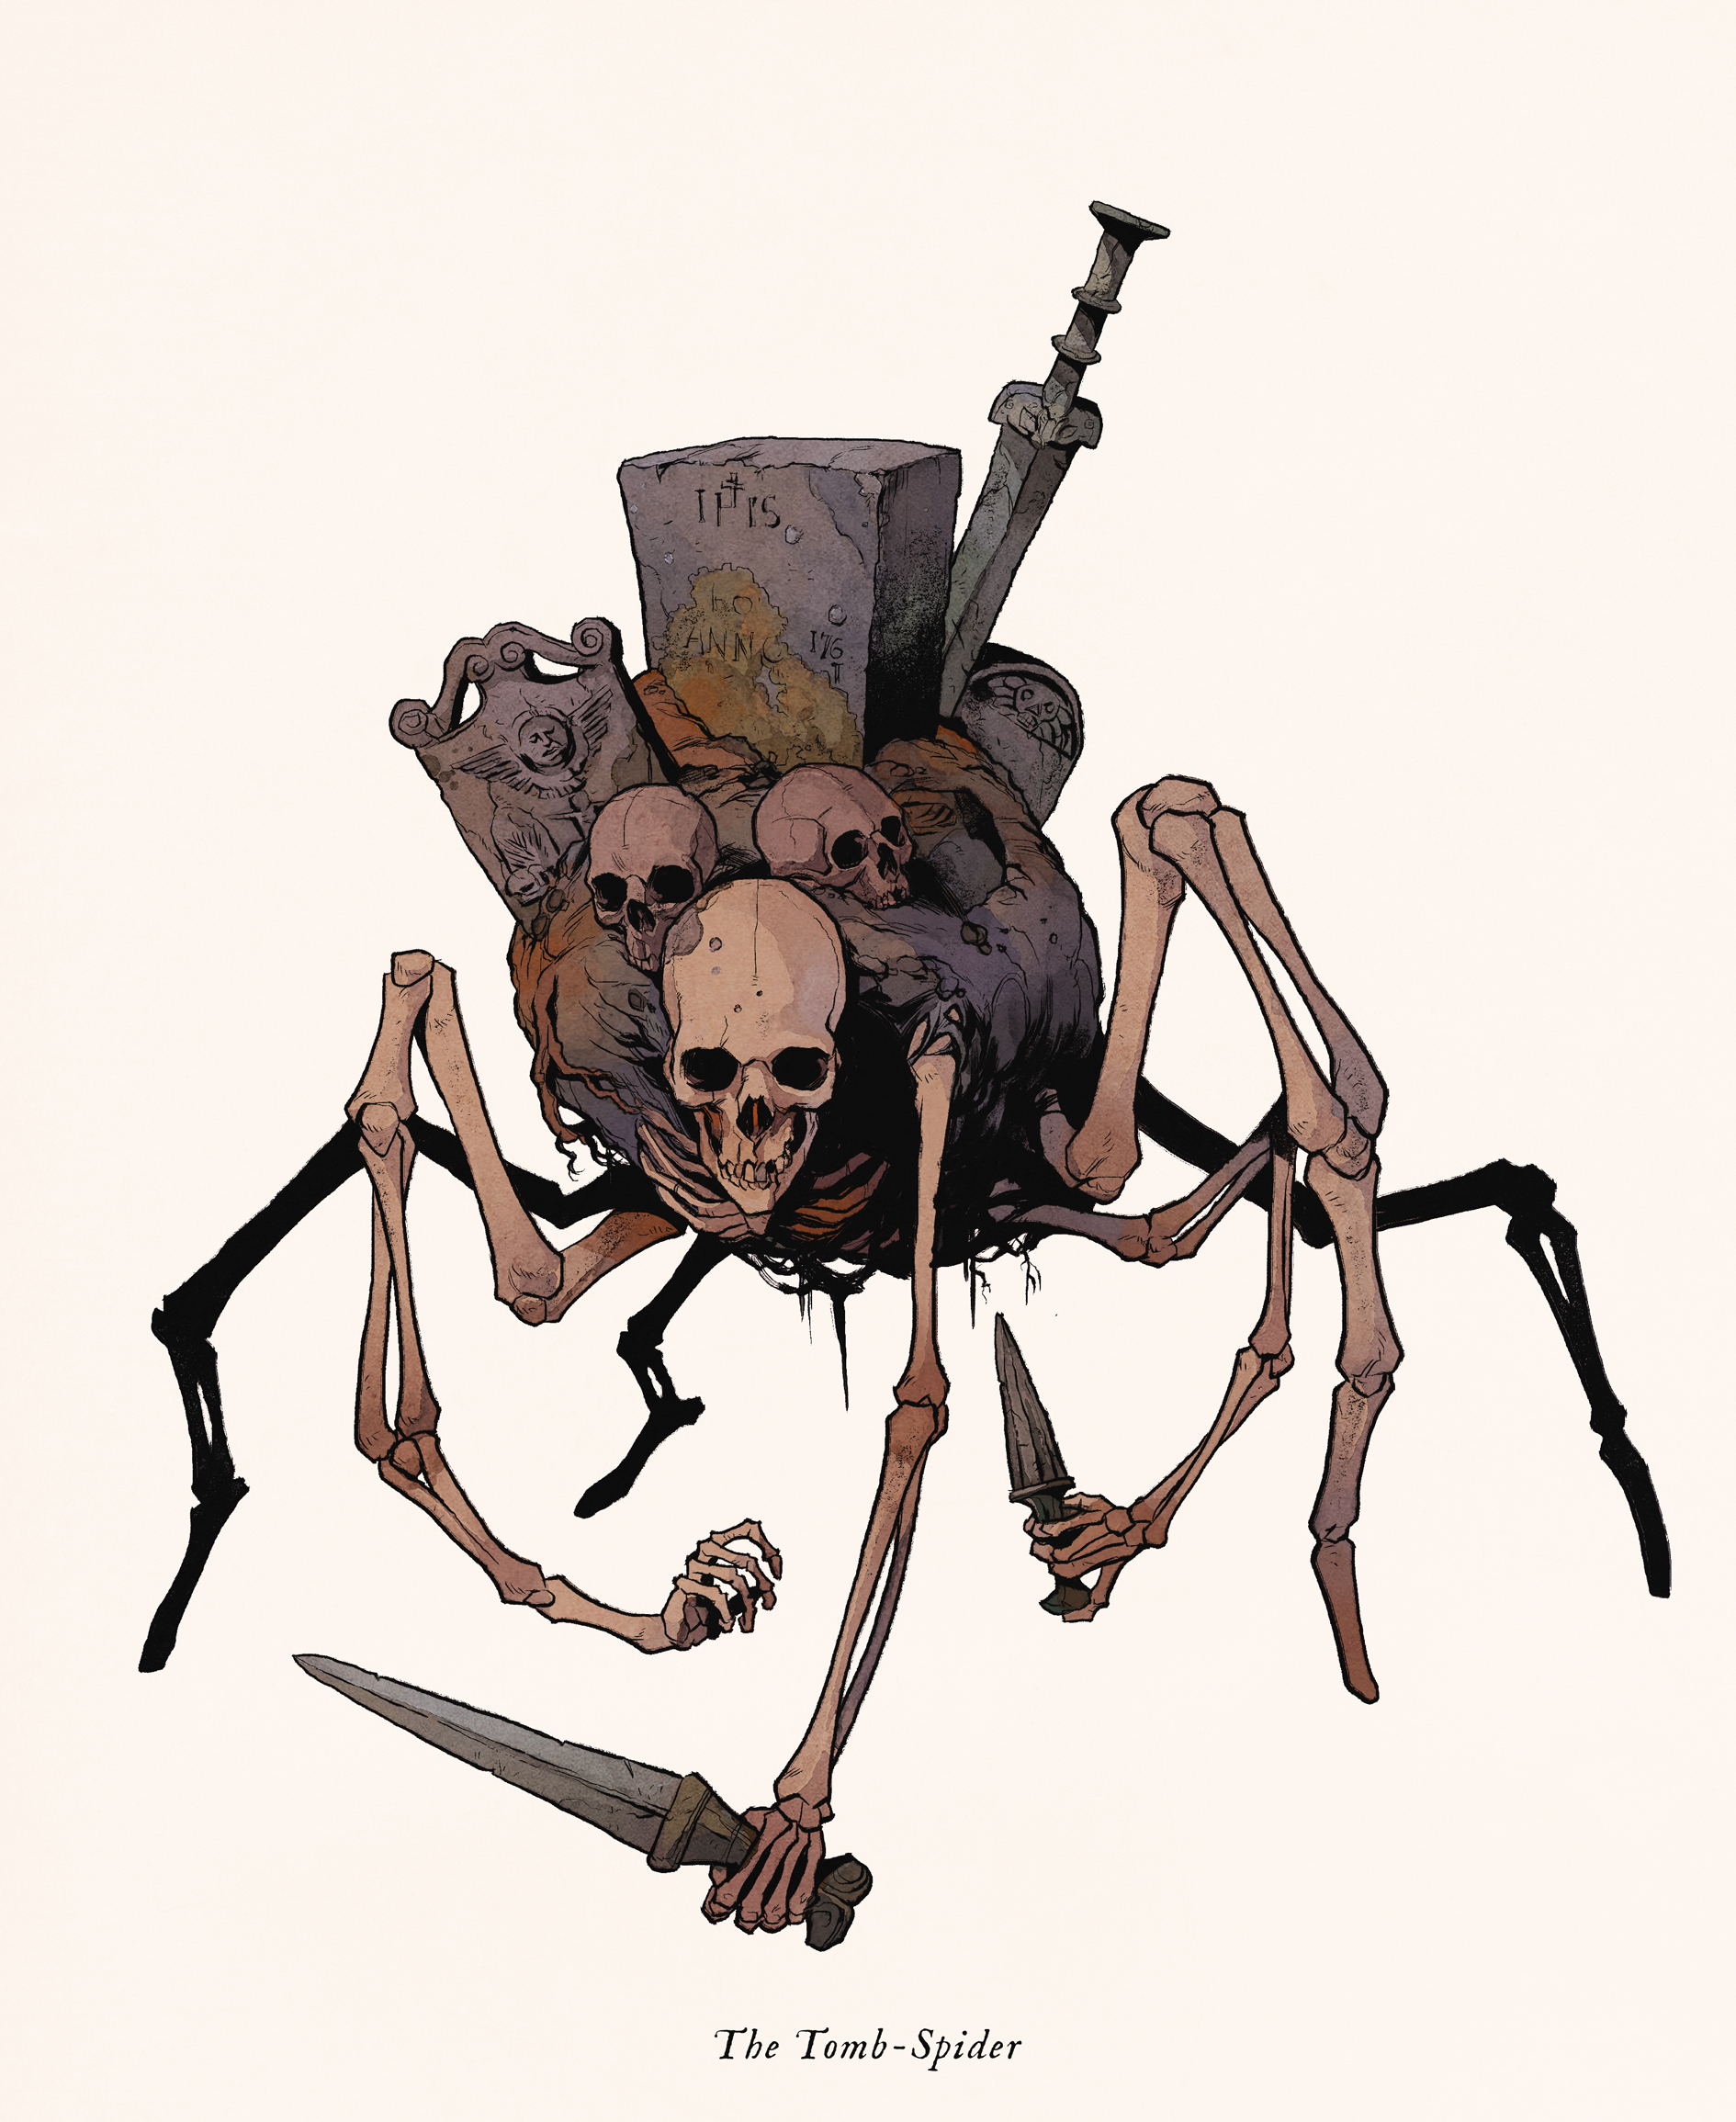 The Tomb-Spider